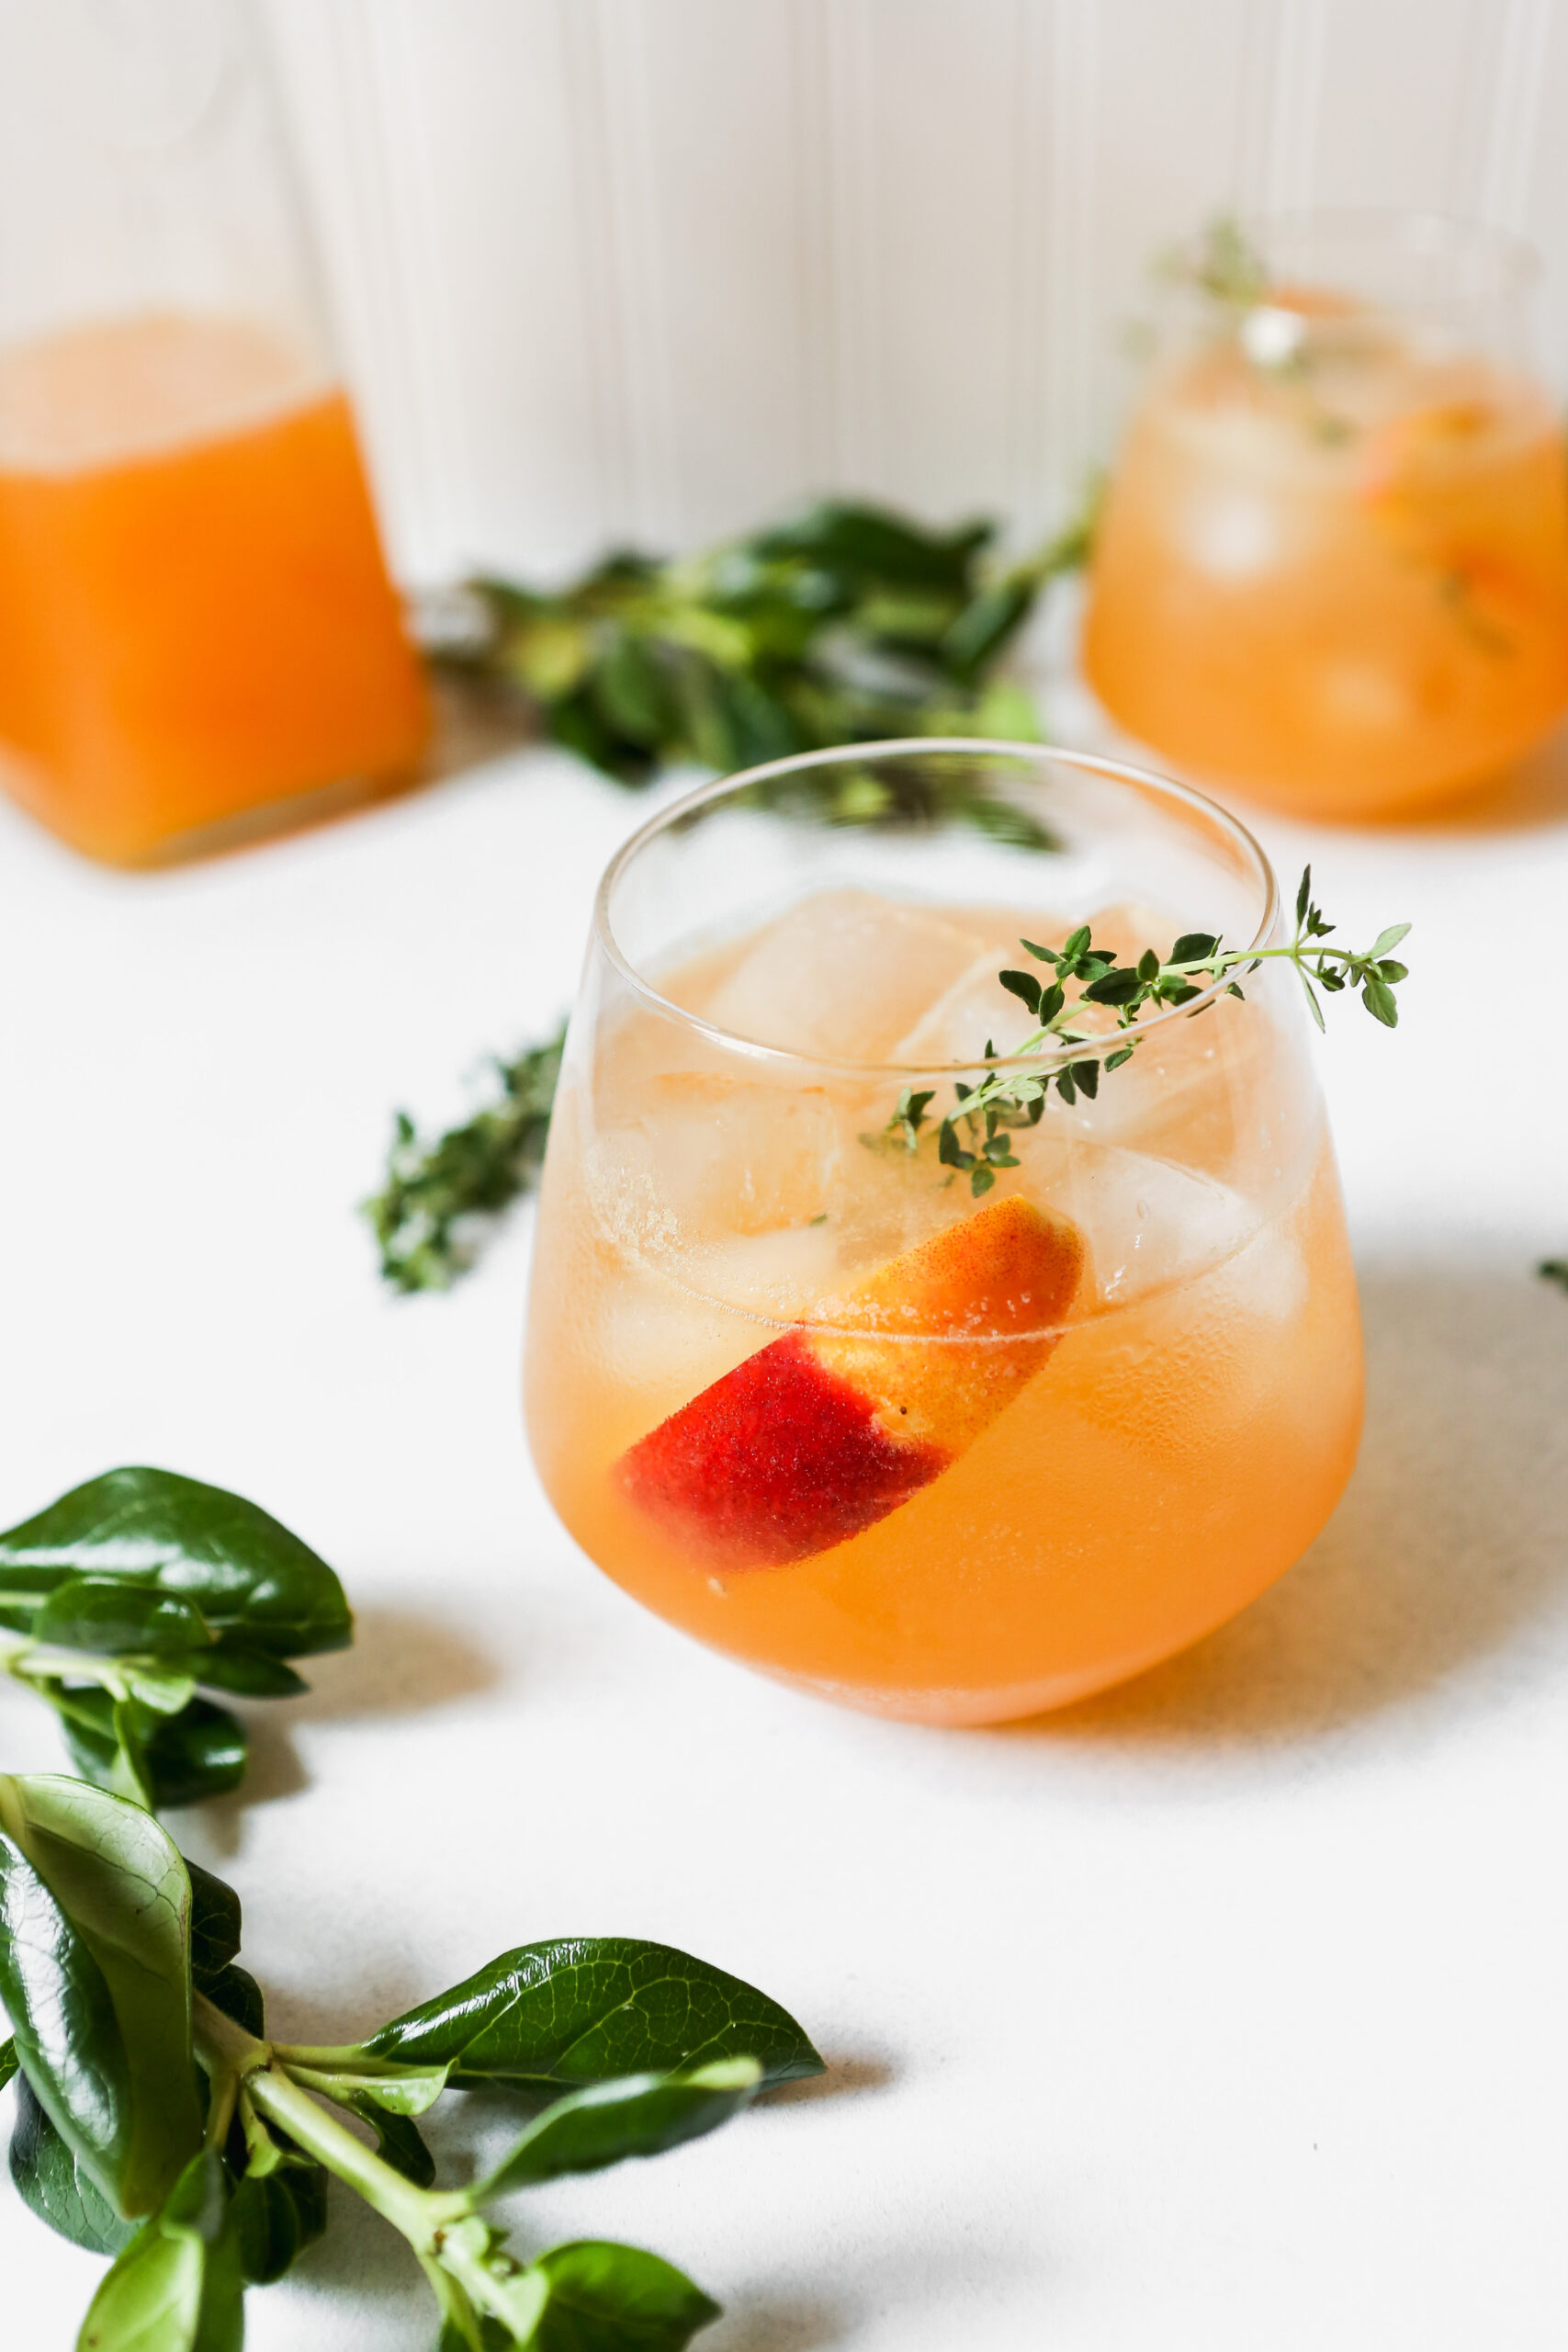 Peach and thyme cocktail photographed from overhead on a white surface. Fresh peach and thyme sprigs arranged around drink.